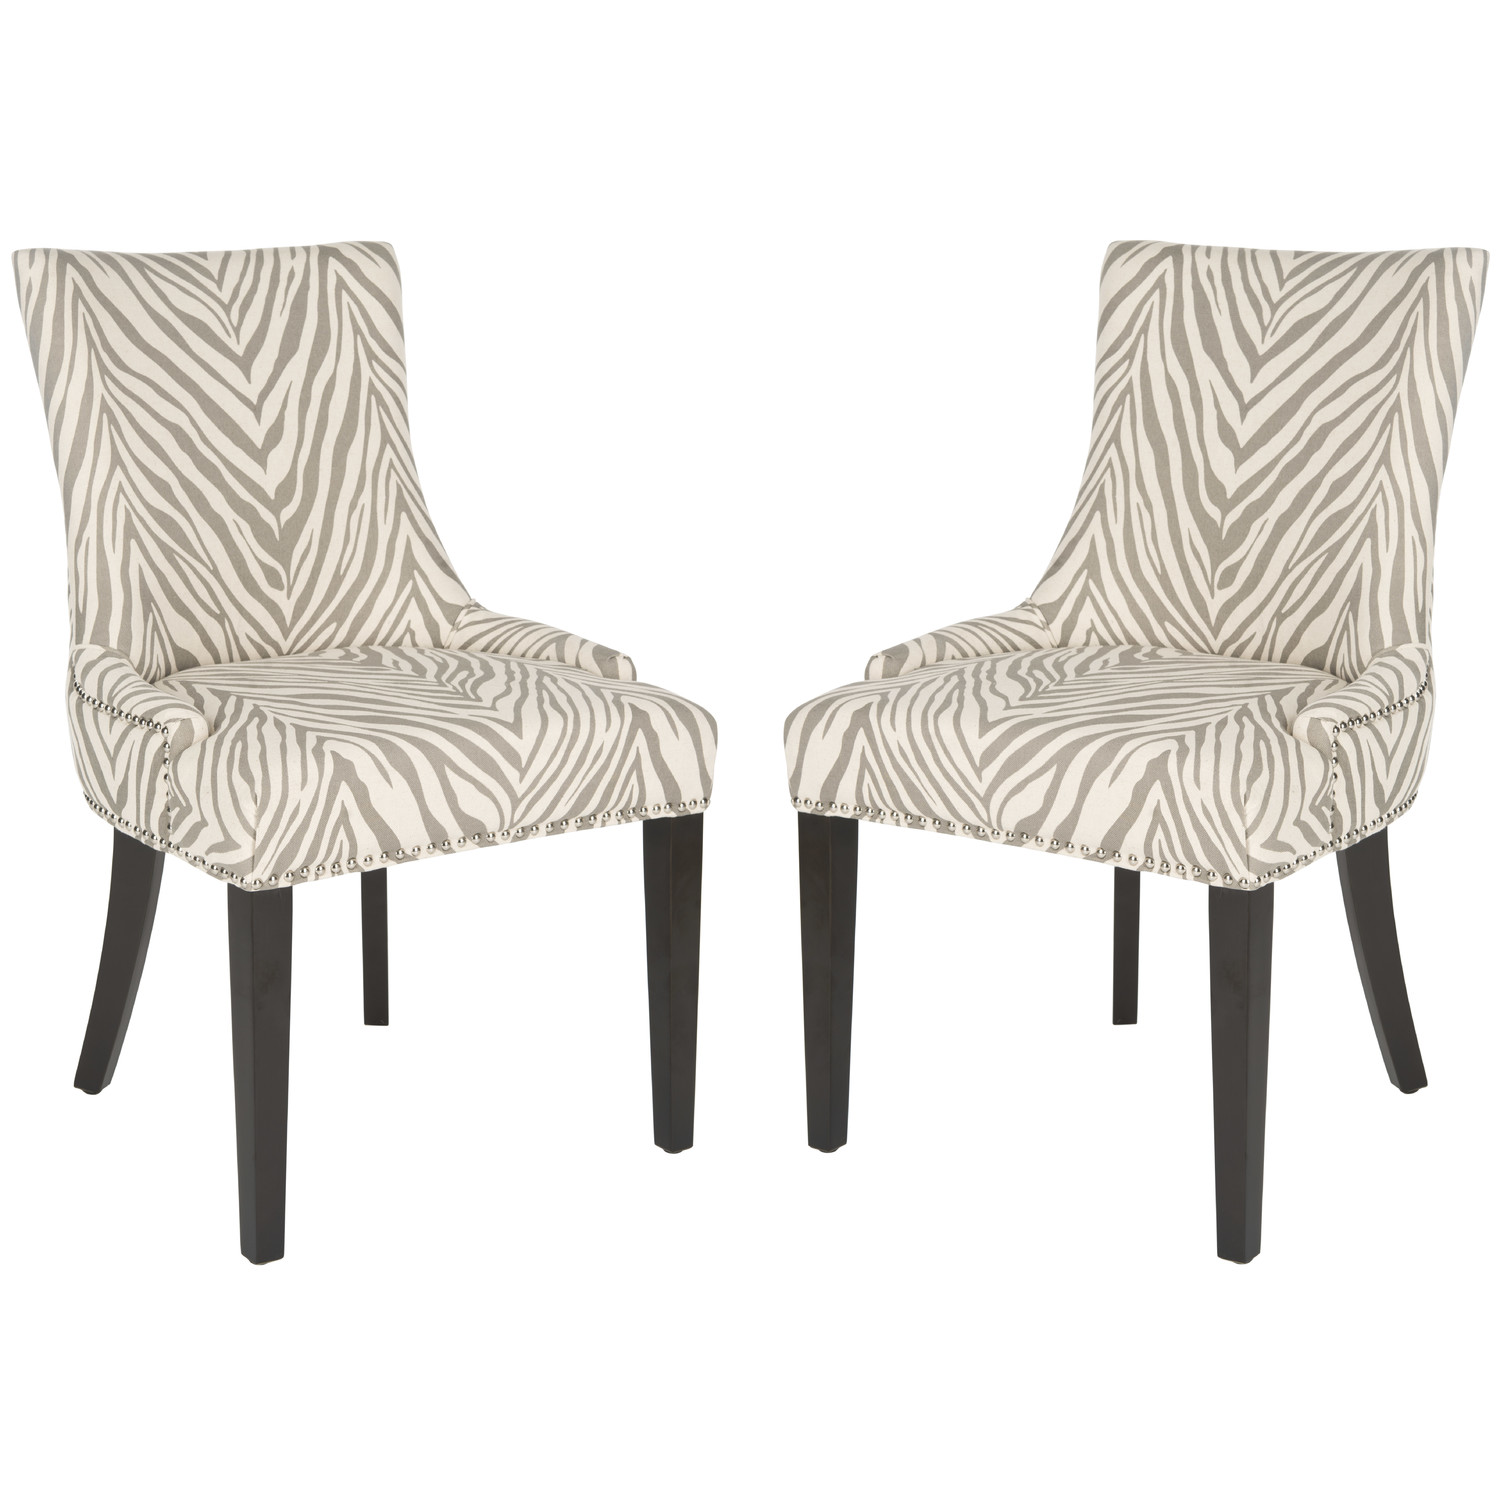 Image of: Safavieh Dining Chairs Zebra Print